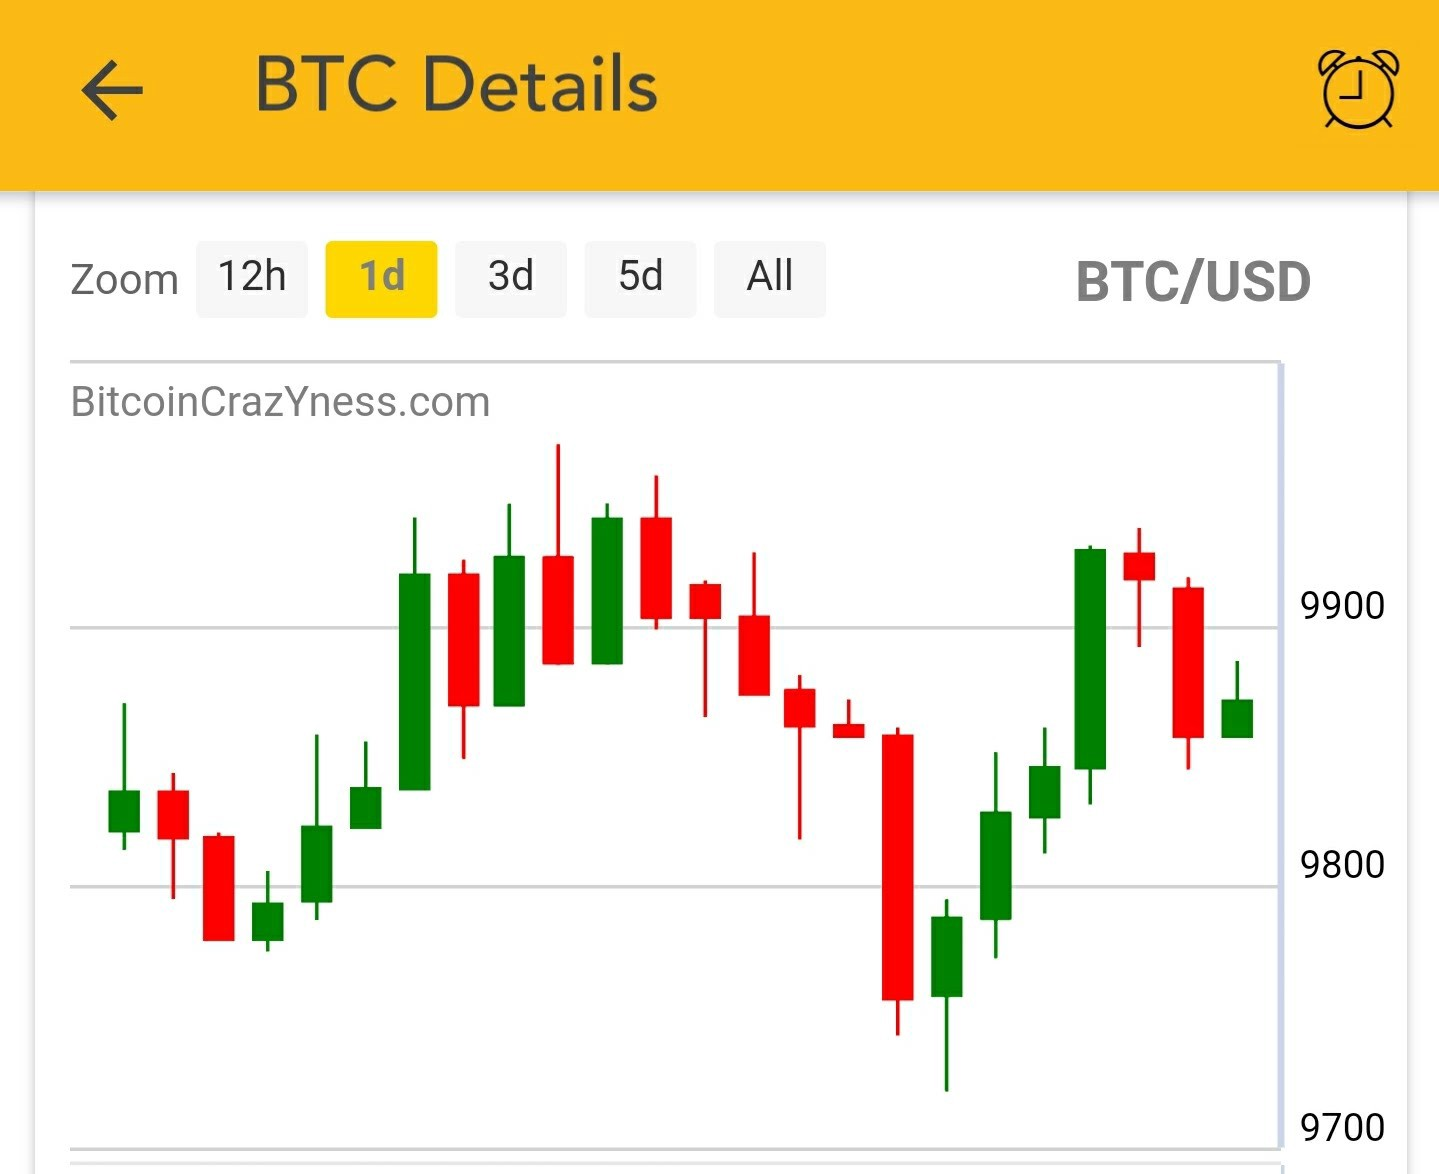 Standard Candlesticks Compare To Heikin Ashi It Has More Gaps Between Candles Of The Same Color Bitcoincrazyness